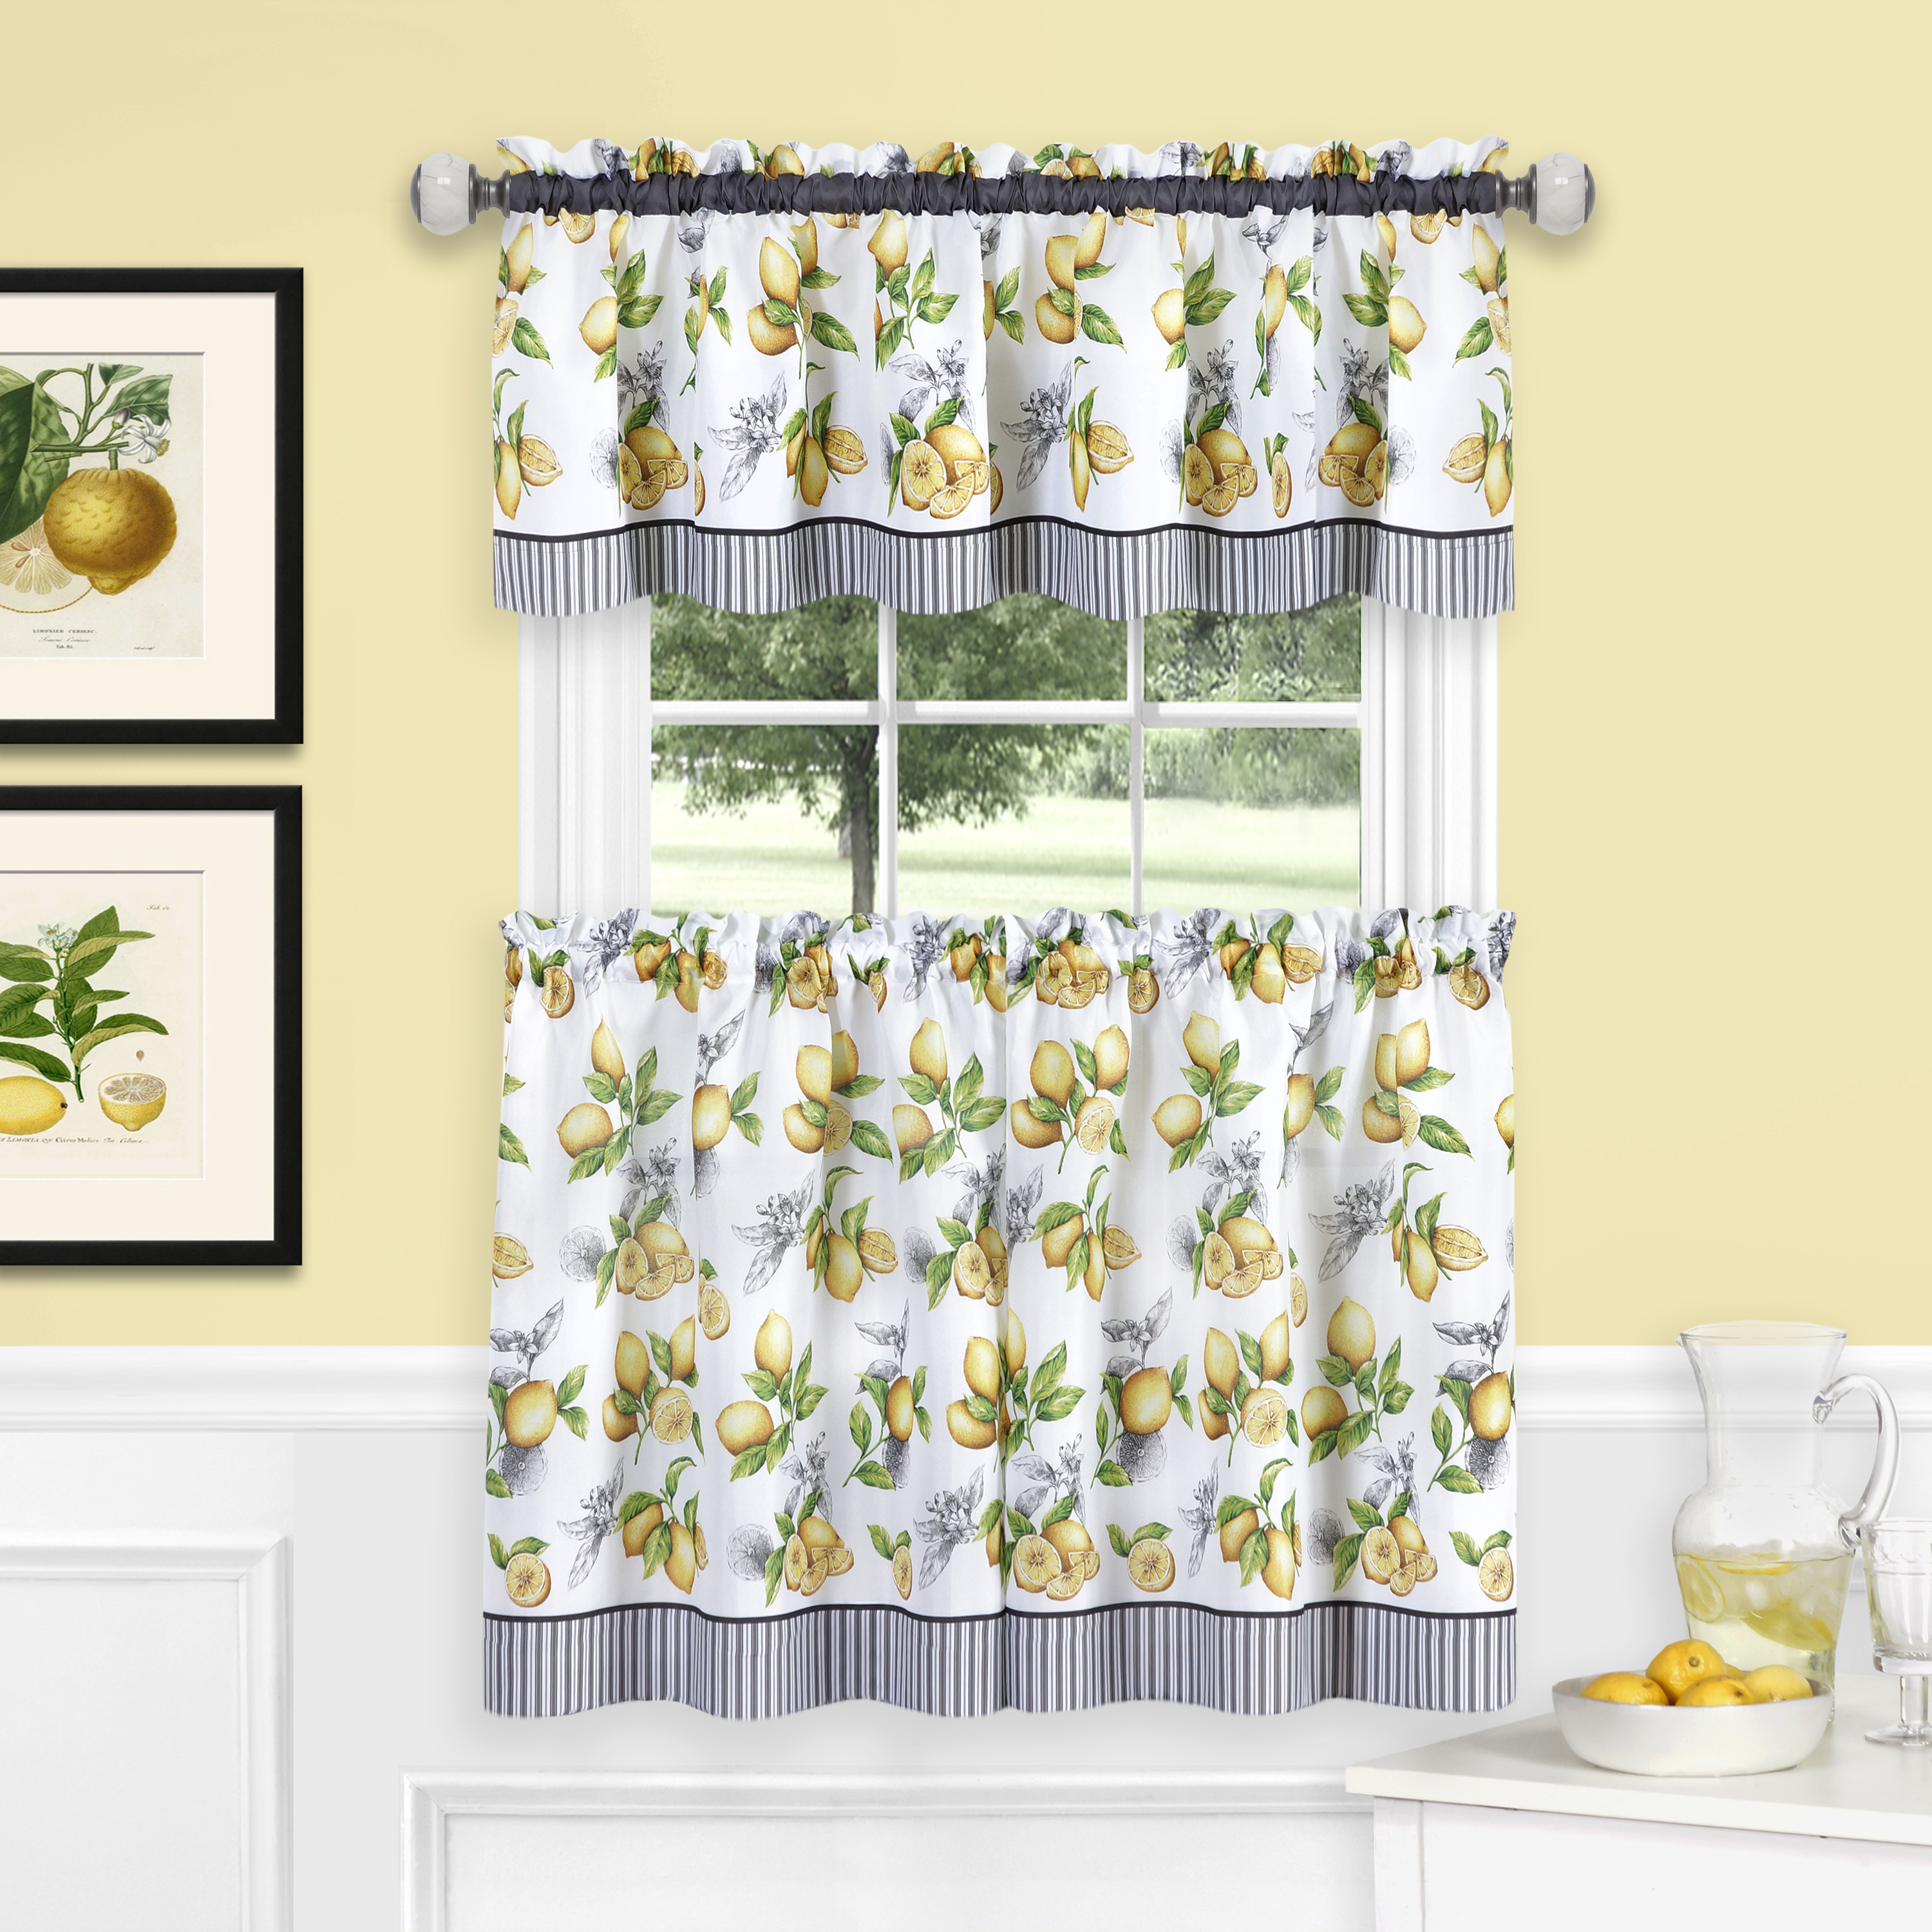 Lemons on Vine Complete Café Kitchen Curtain Tier & Valance Set - Assorted Sizes